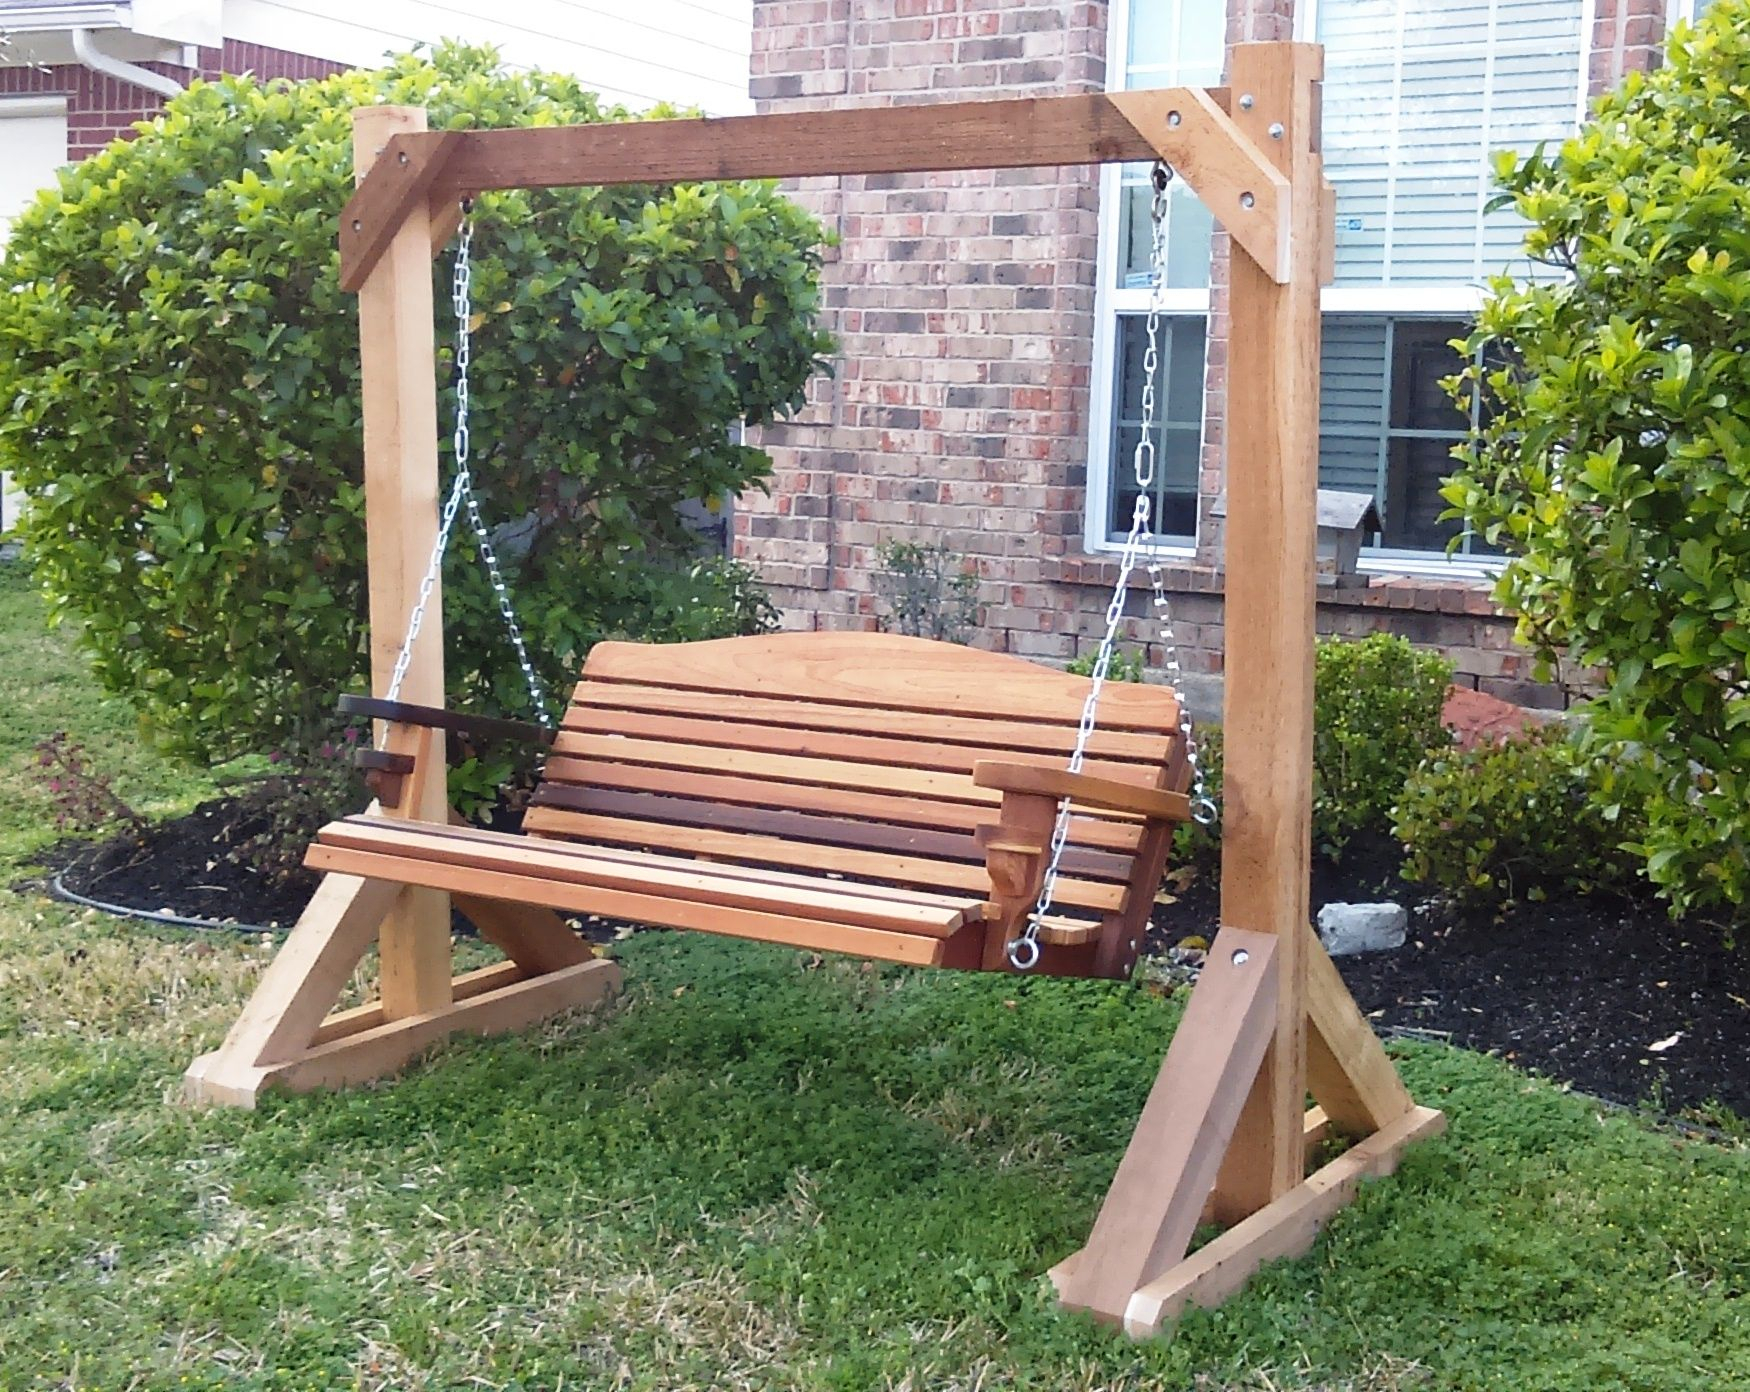 Wooden Swings | Patio Swing | Wooden Porch Swing | Porch For Hardwood Hanging Porch Swings With Stand (View 2 of 25)